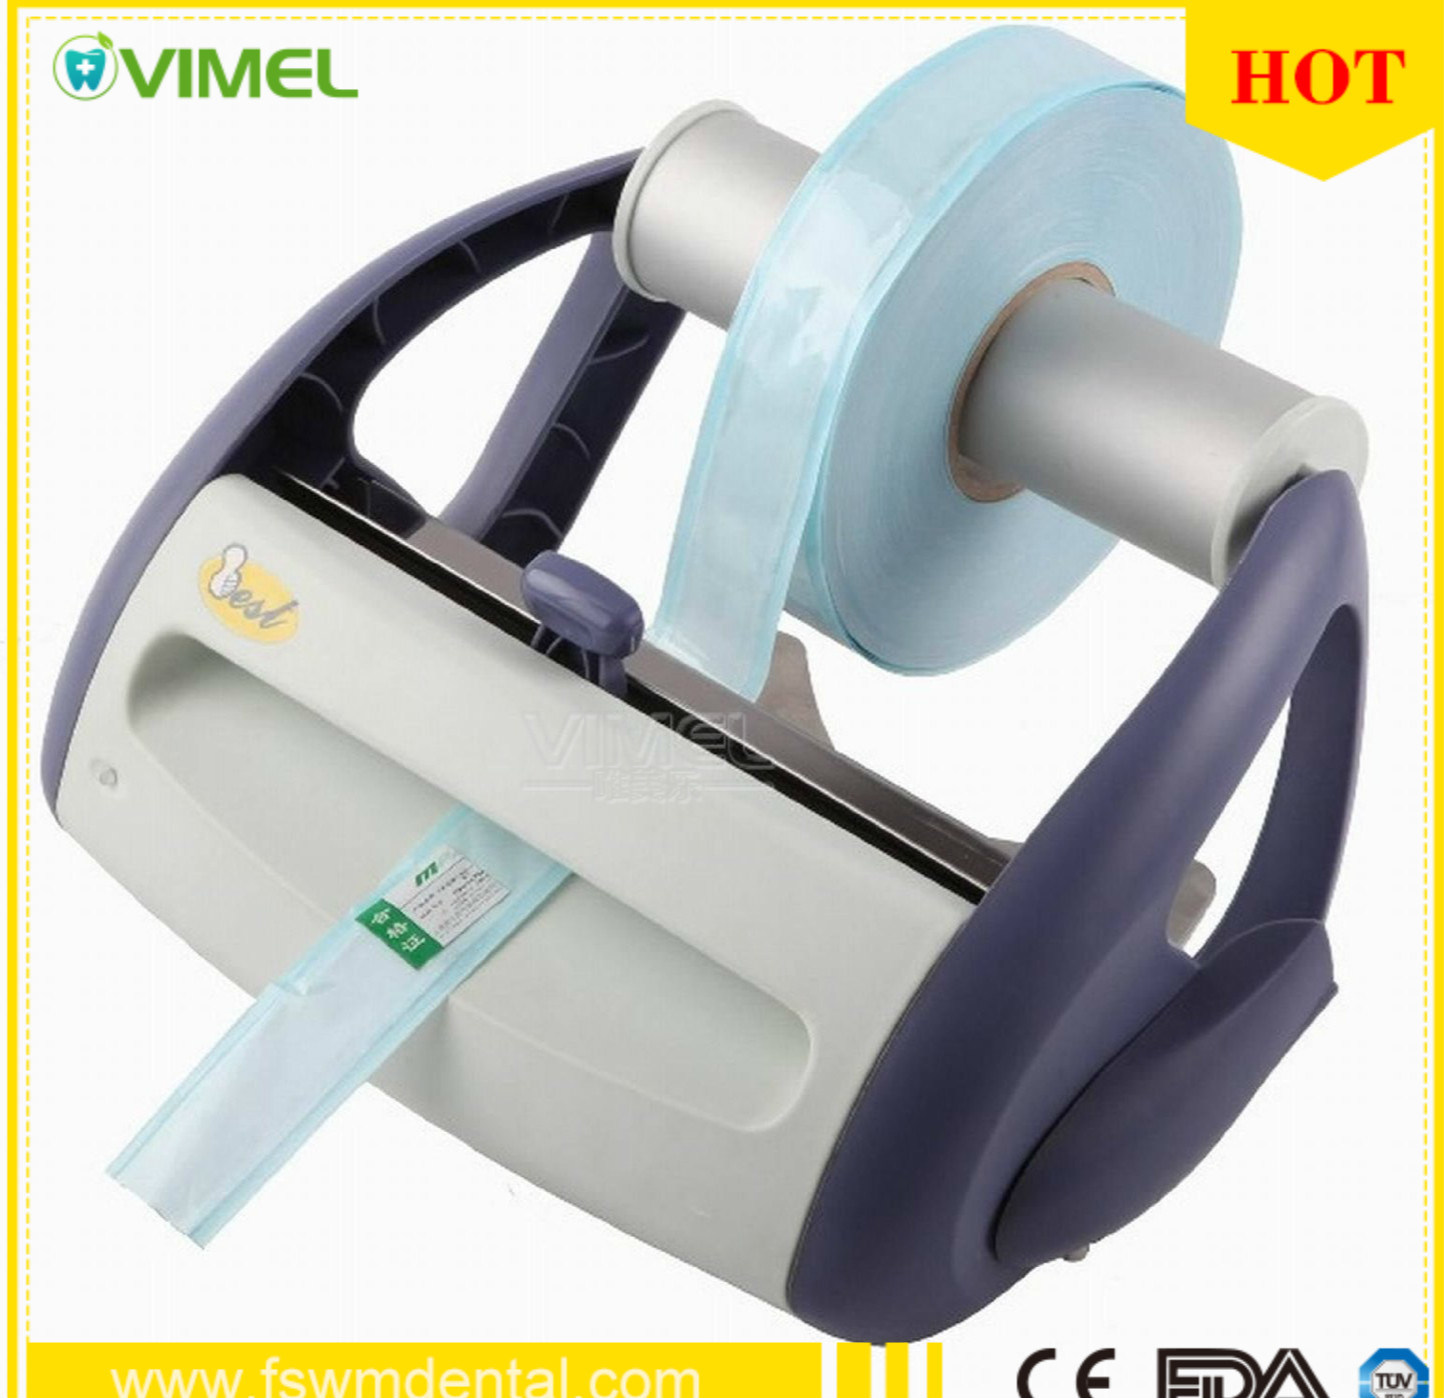 Wall Mounted Dental Pulse Sealing Machine for Sterilization Package